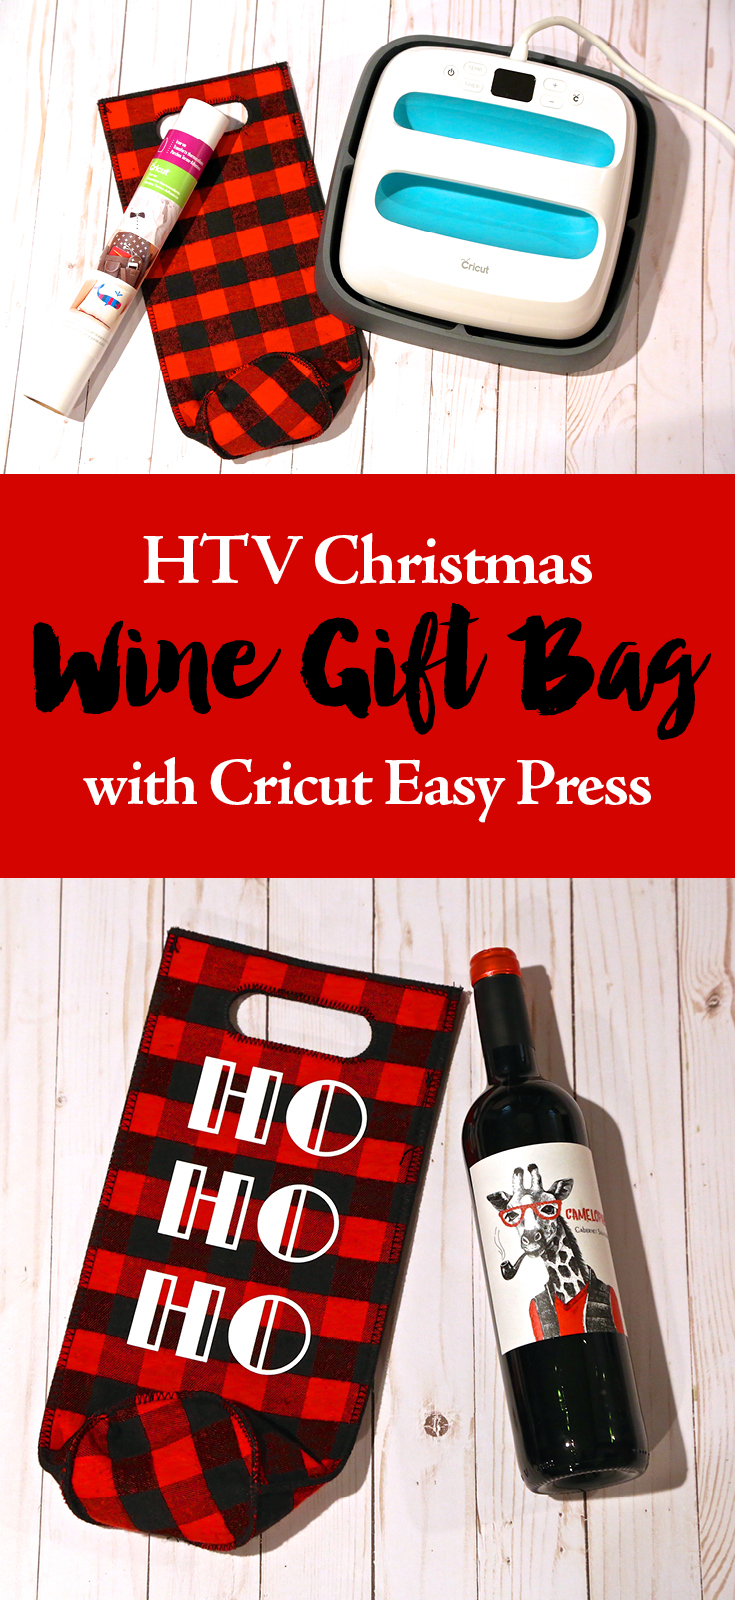 HTV Christmas Wine Gift Bag.jpg